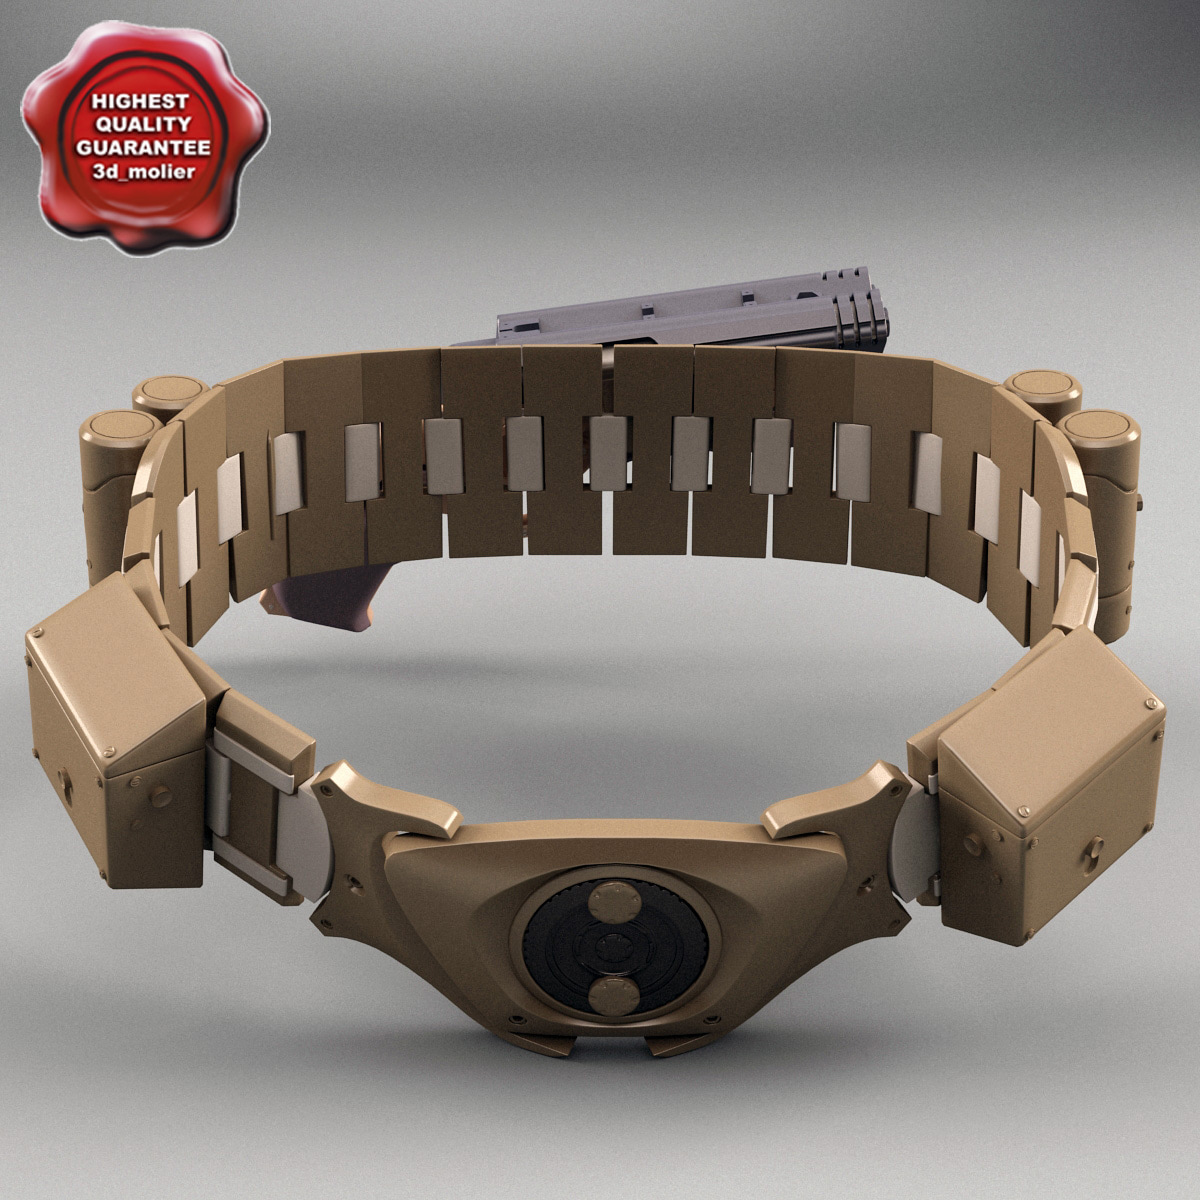 Batman_Belt_00.jpg